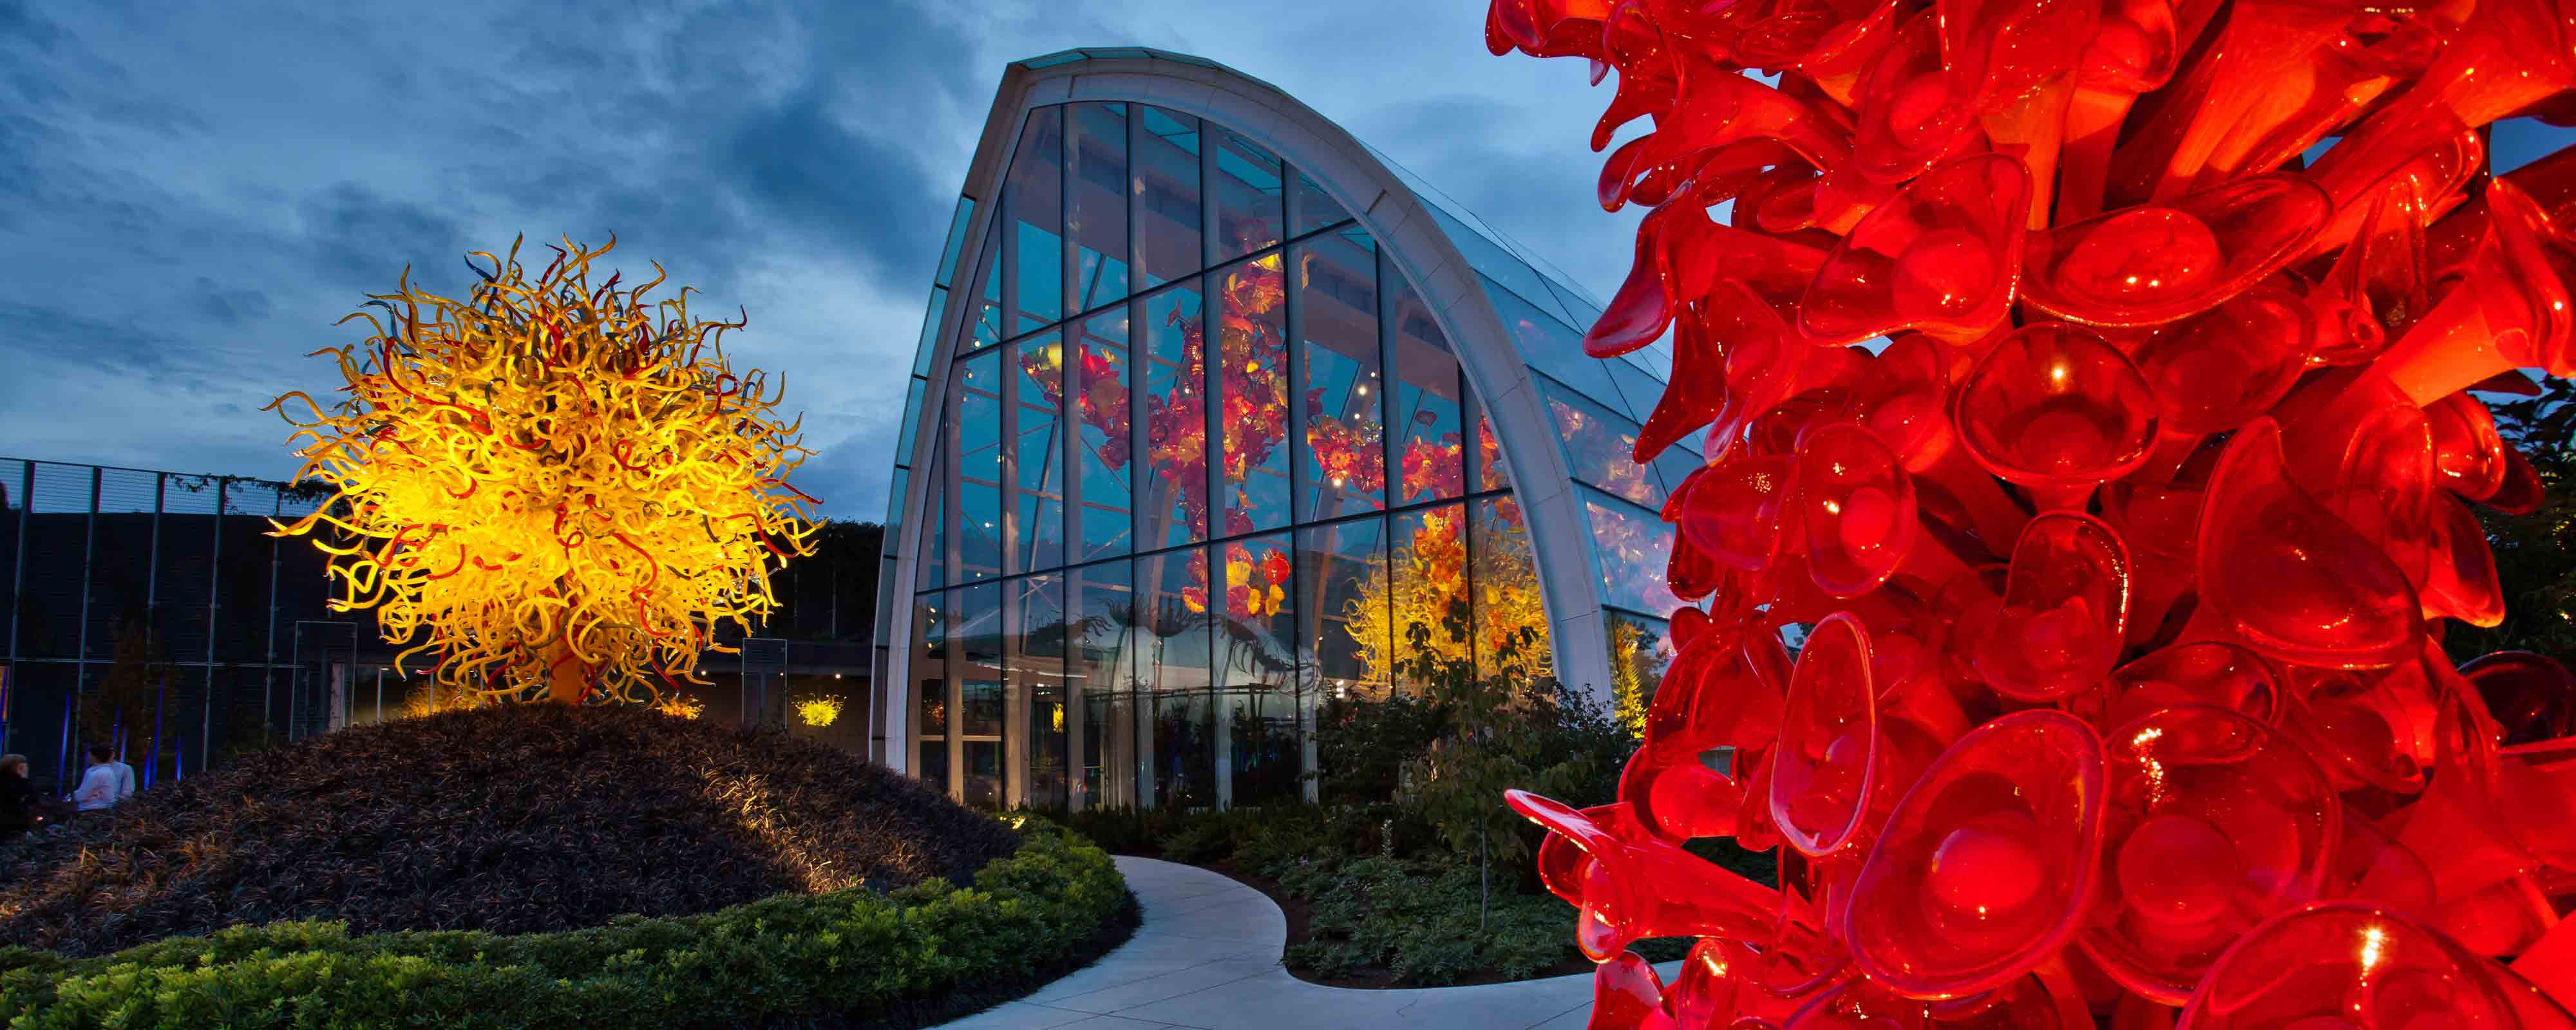 Glasshouse and gardens (image from Chihuly Garden and Glass)